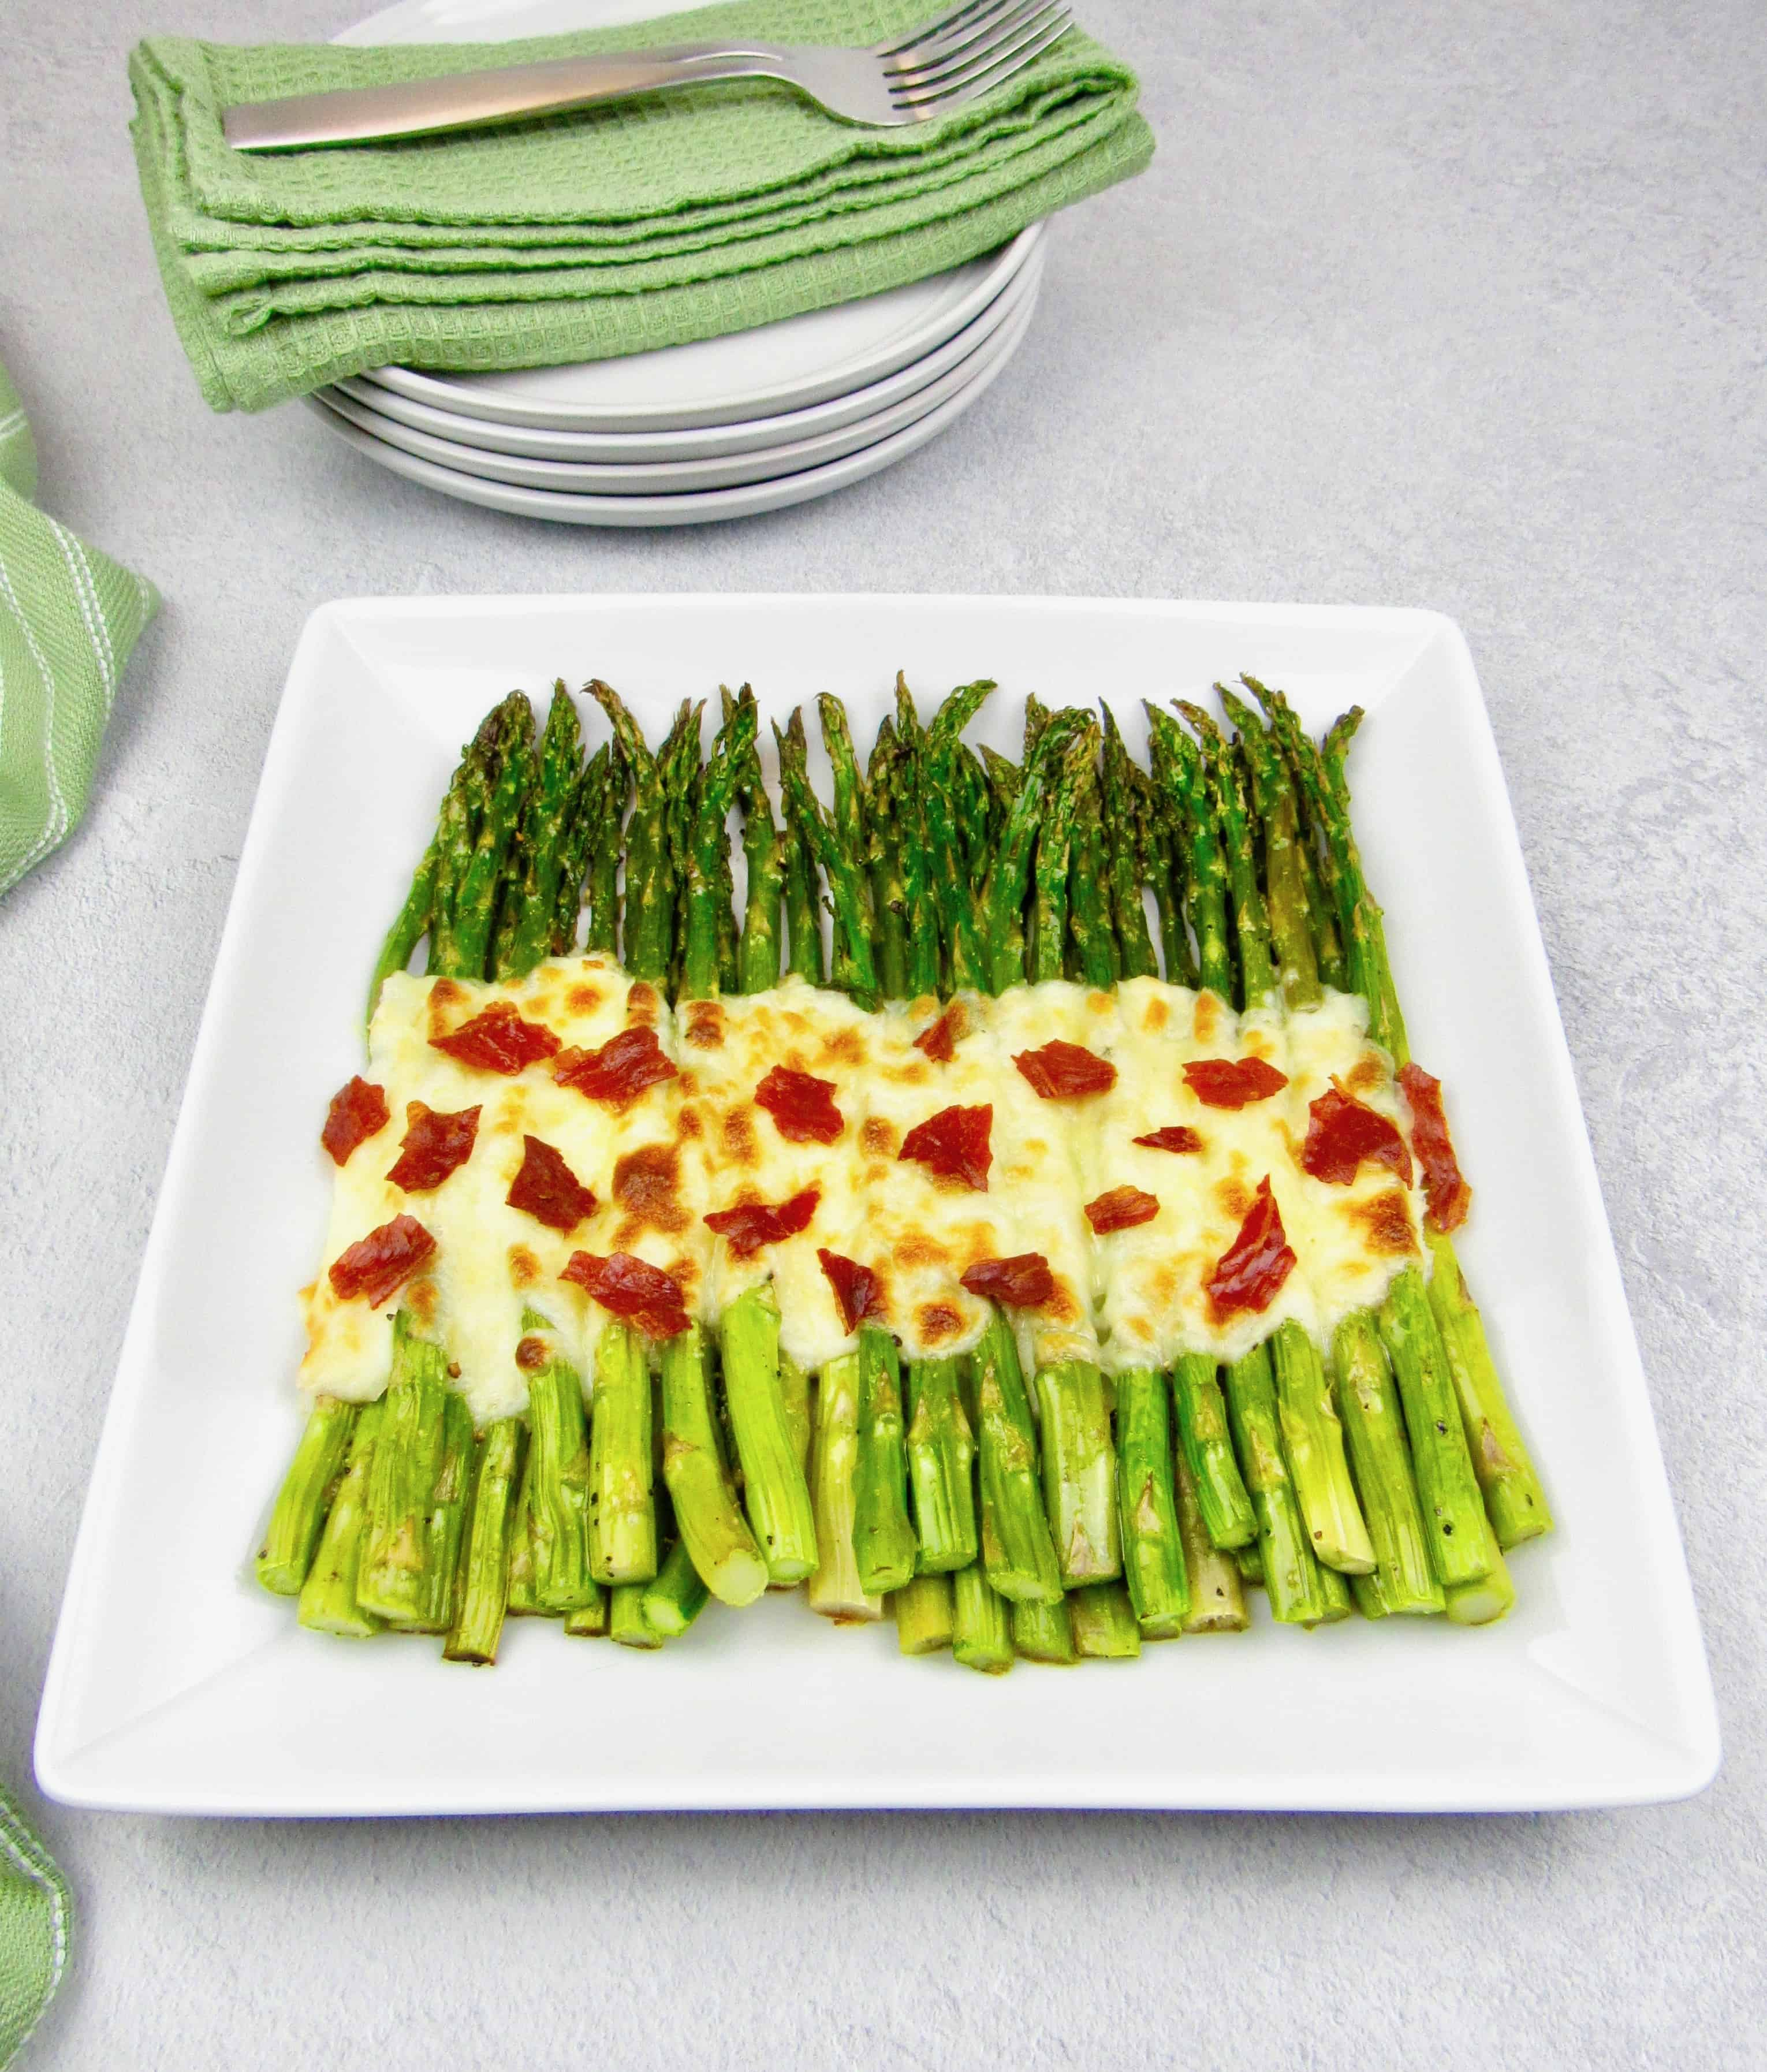 overhead view of roasted asparagus on white plate with melted cheese and crispy prosciutto on top